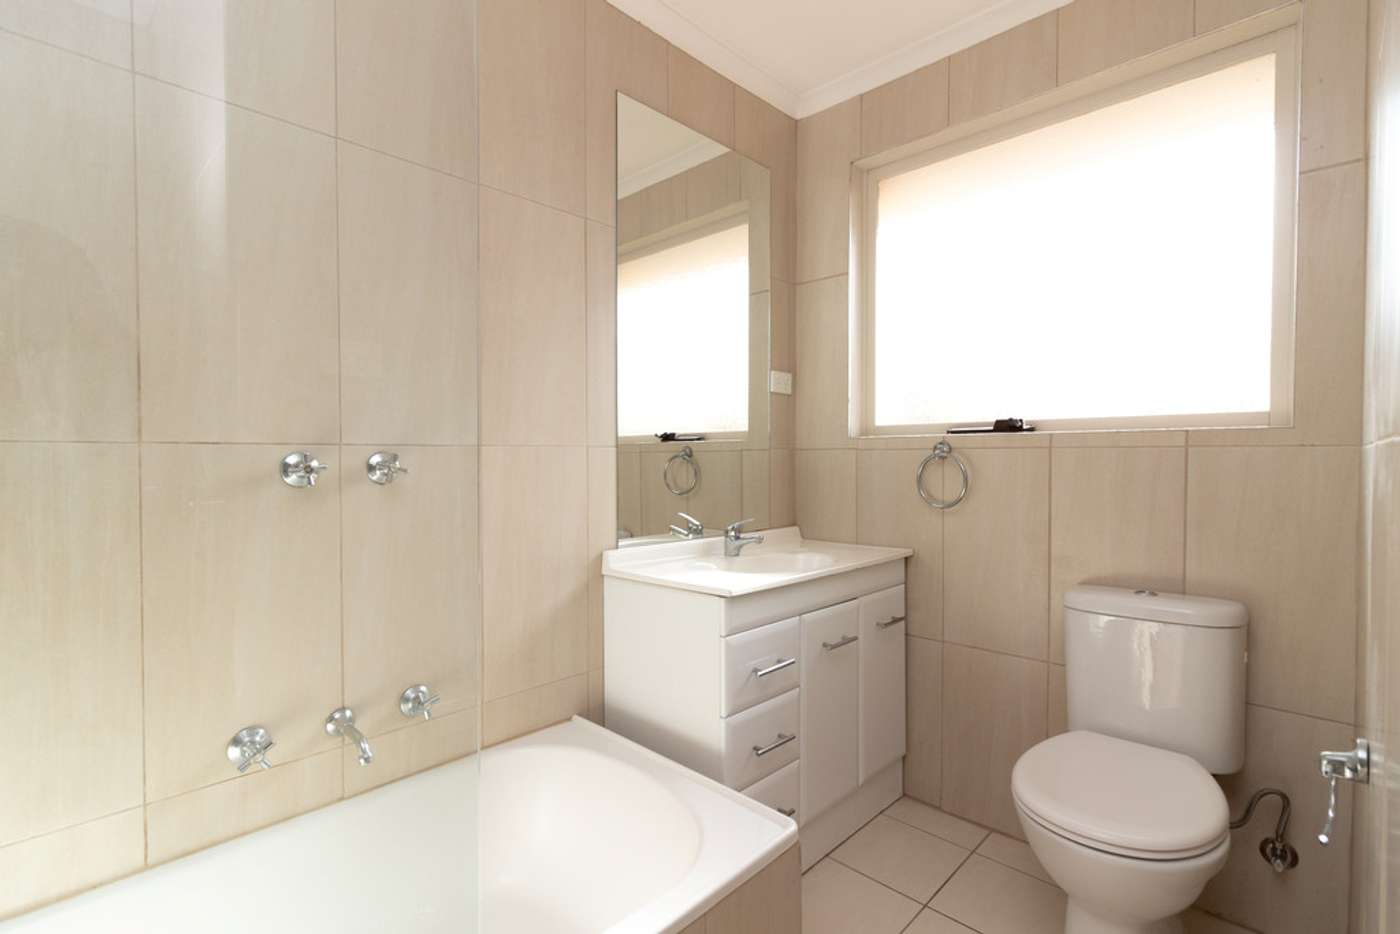 Sixth view of Homely house listing, 2 Gianni Court, Keysborough VIC 3173